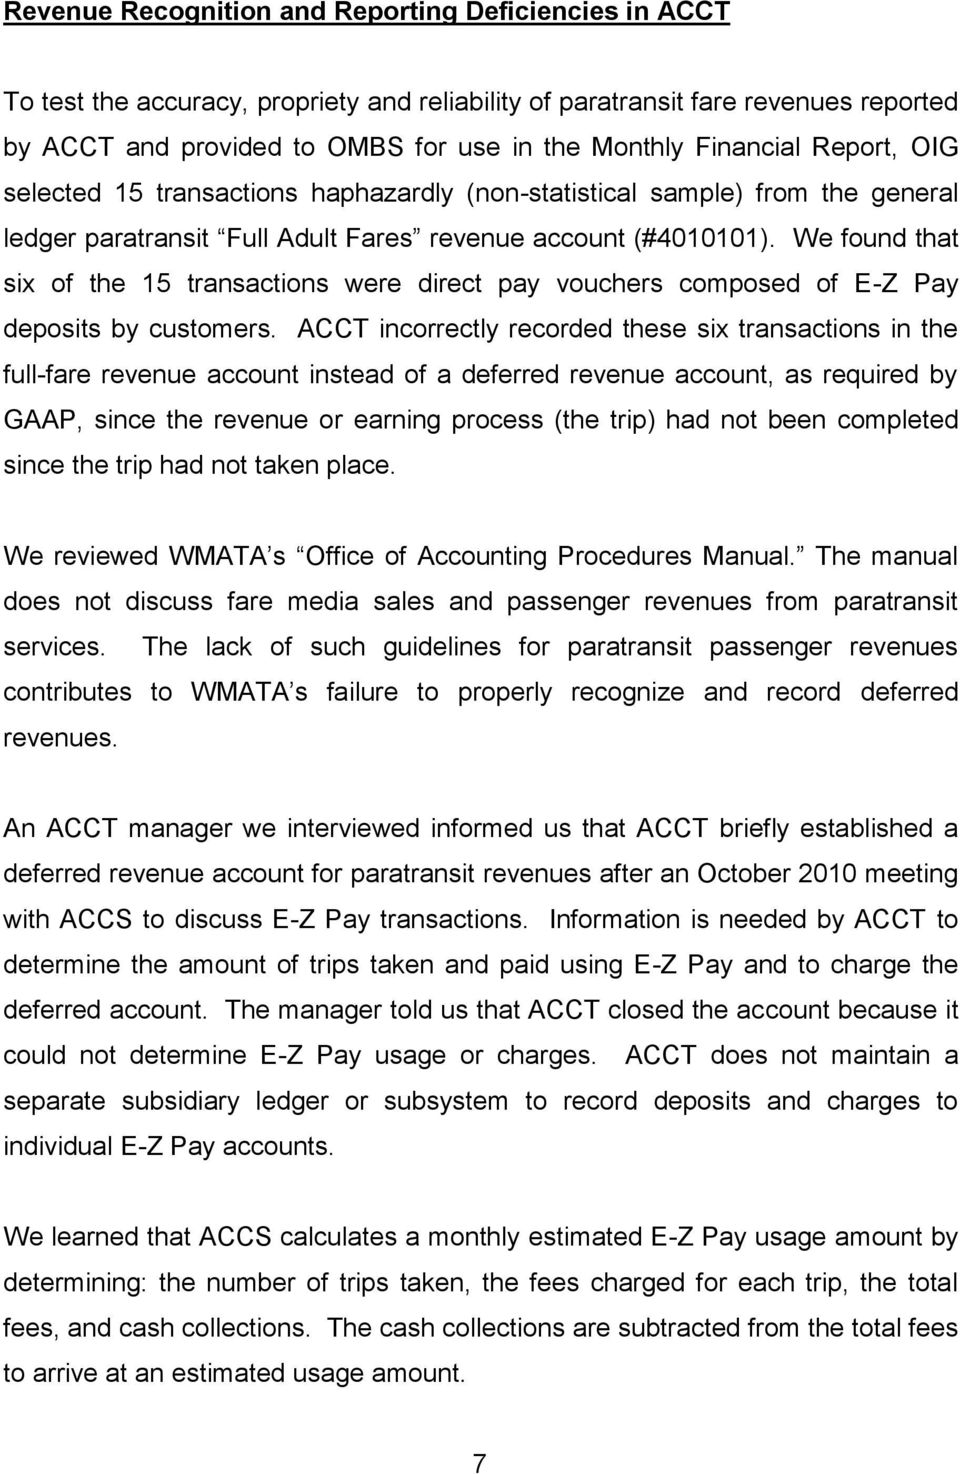 We found that six of the 15 transactions were direct pay vouchers composed of E-Z Pay deposits by customers.